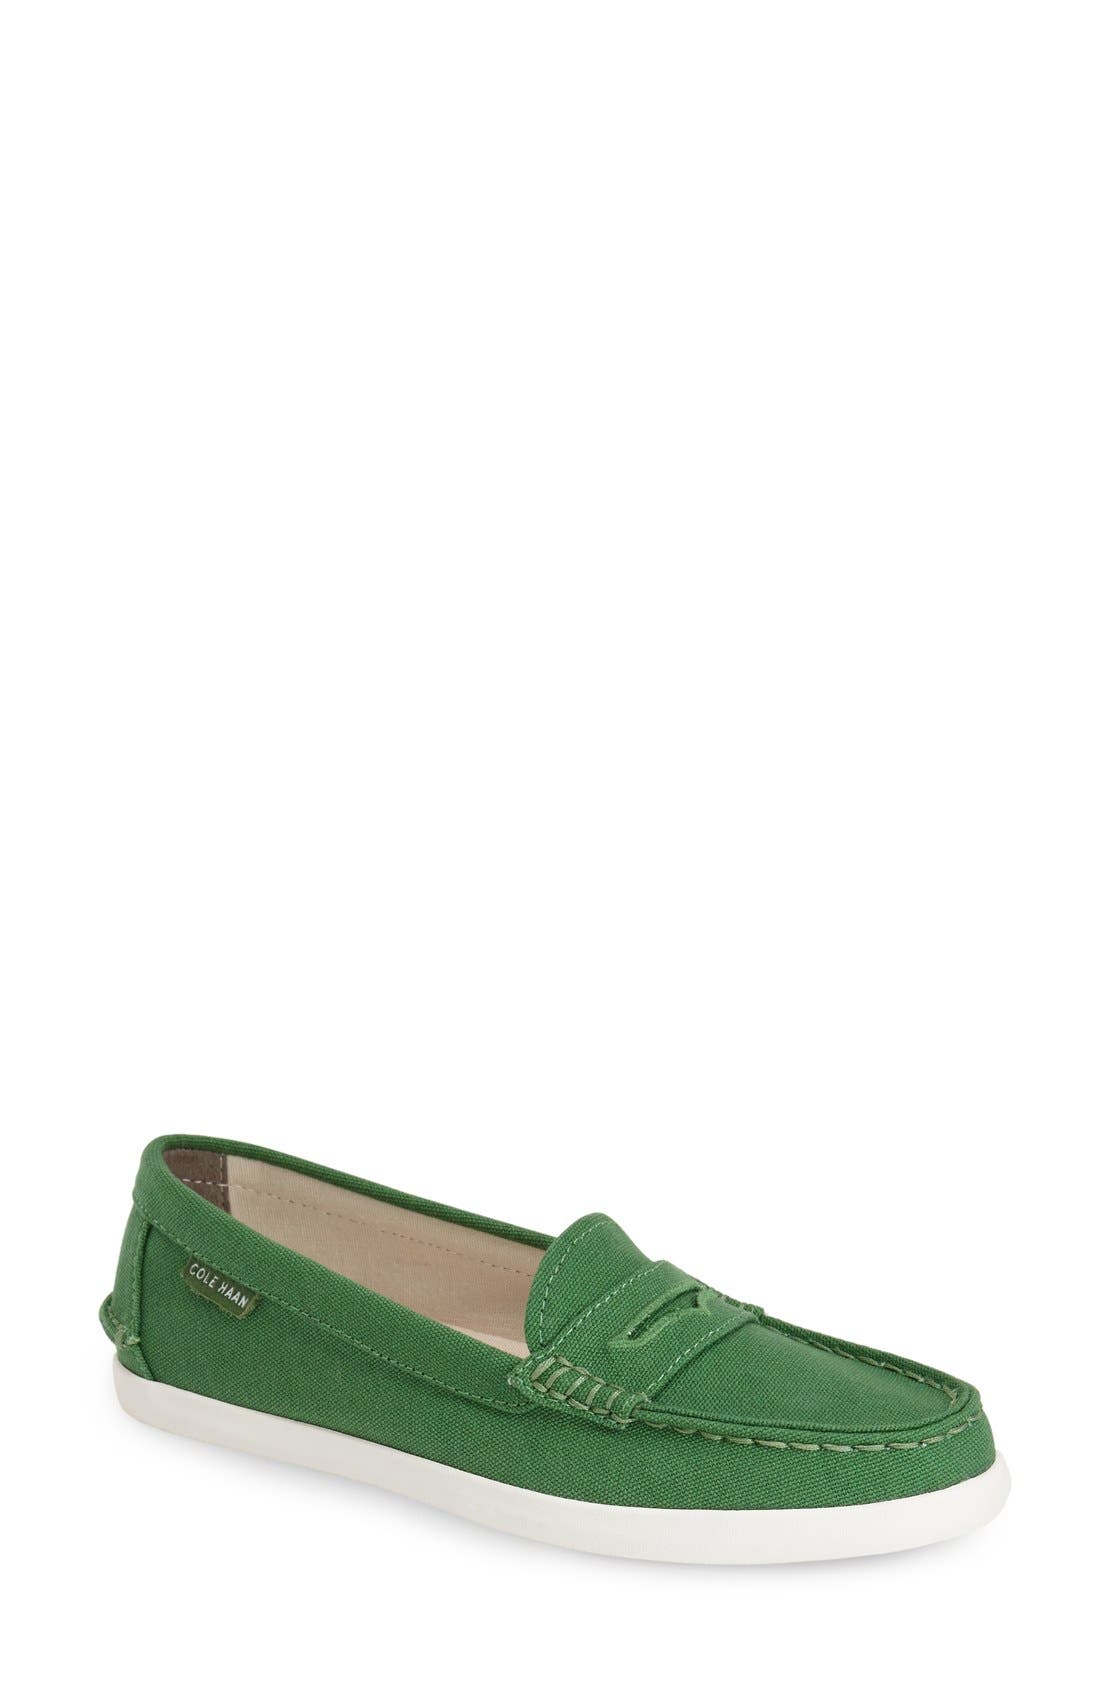 Alternate Image 1 Selected - Cole Haan 'Pinch' Penny Loafer (Women)